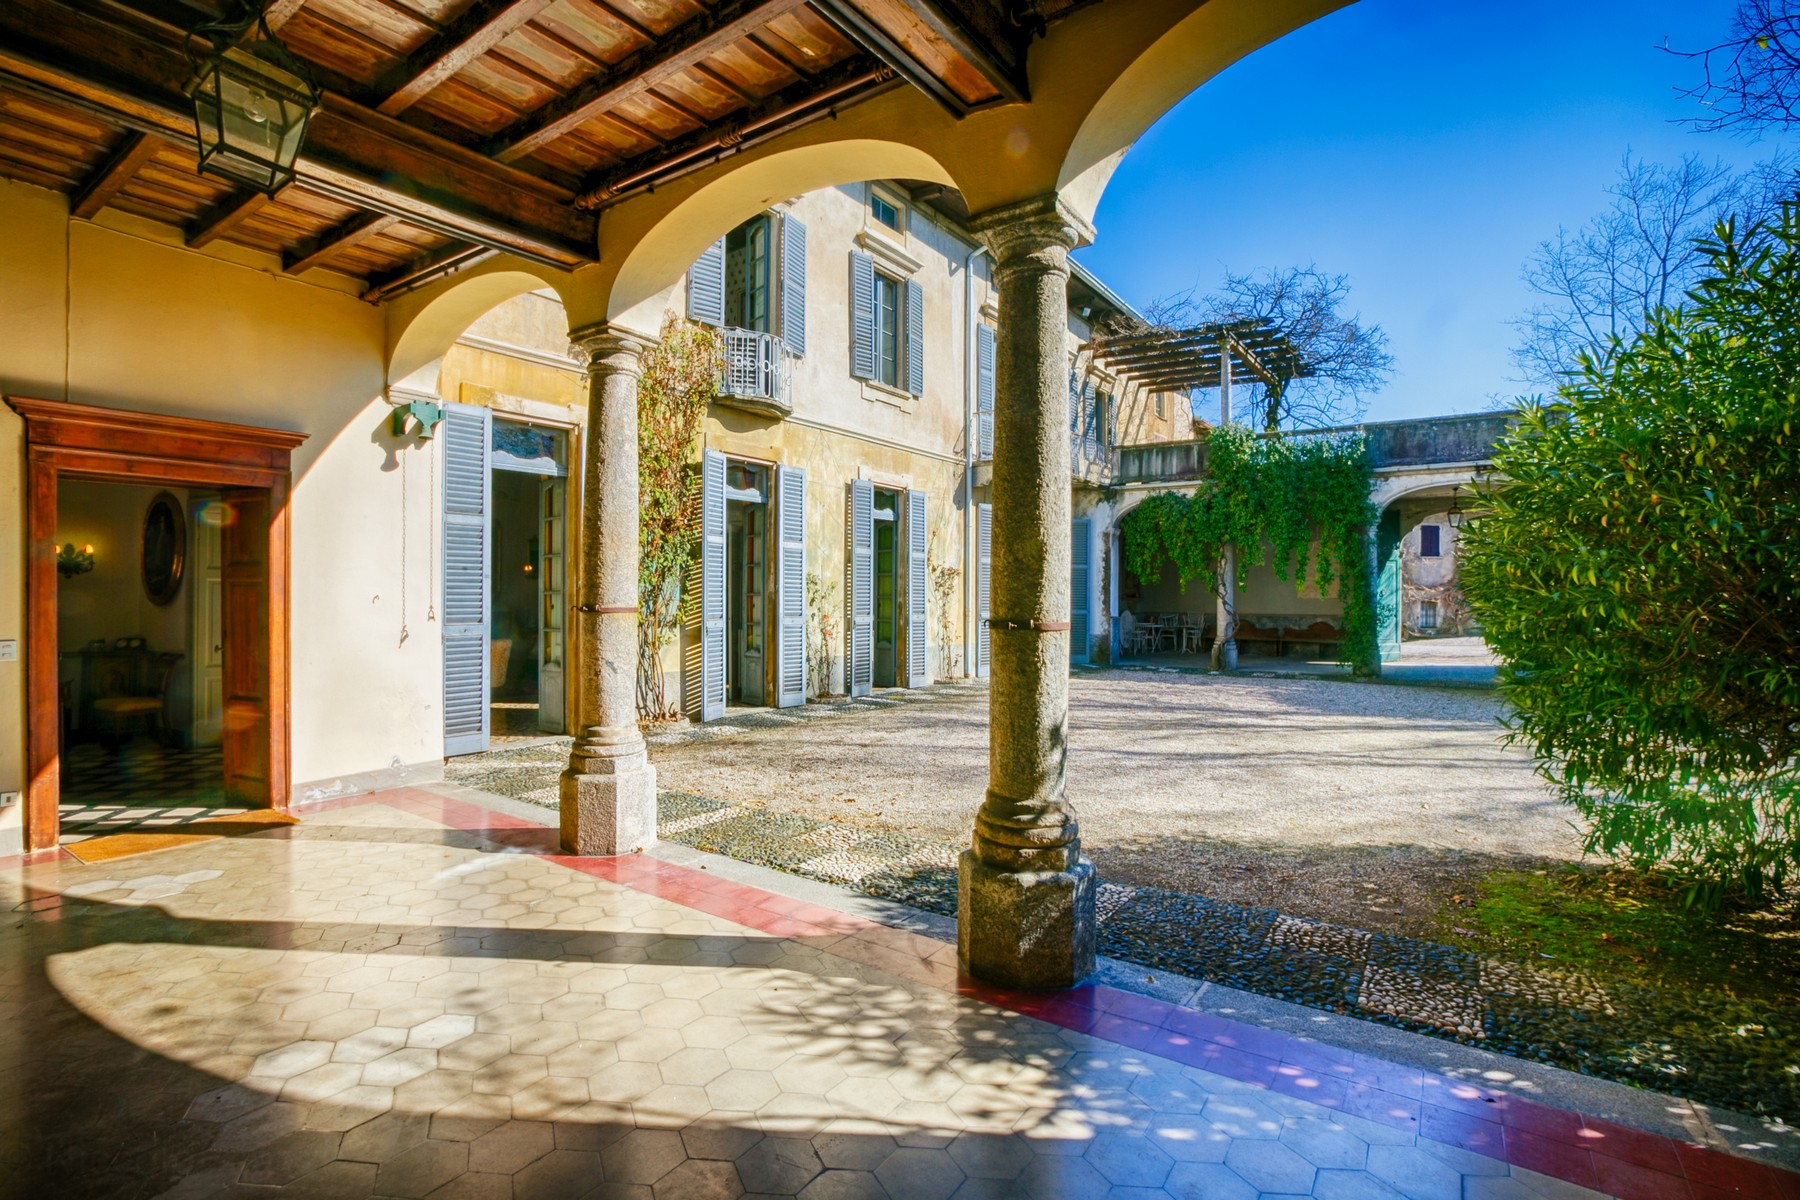 Additional photo for property listing at Villa Torricella Erba Erba, Como 22036 Italie